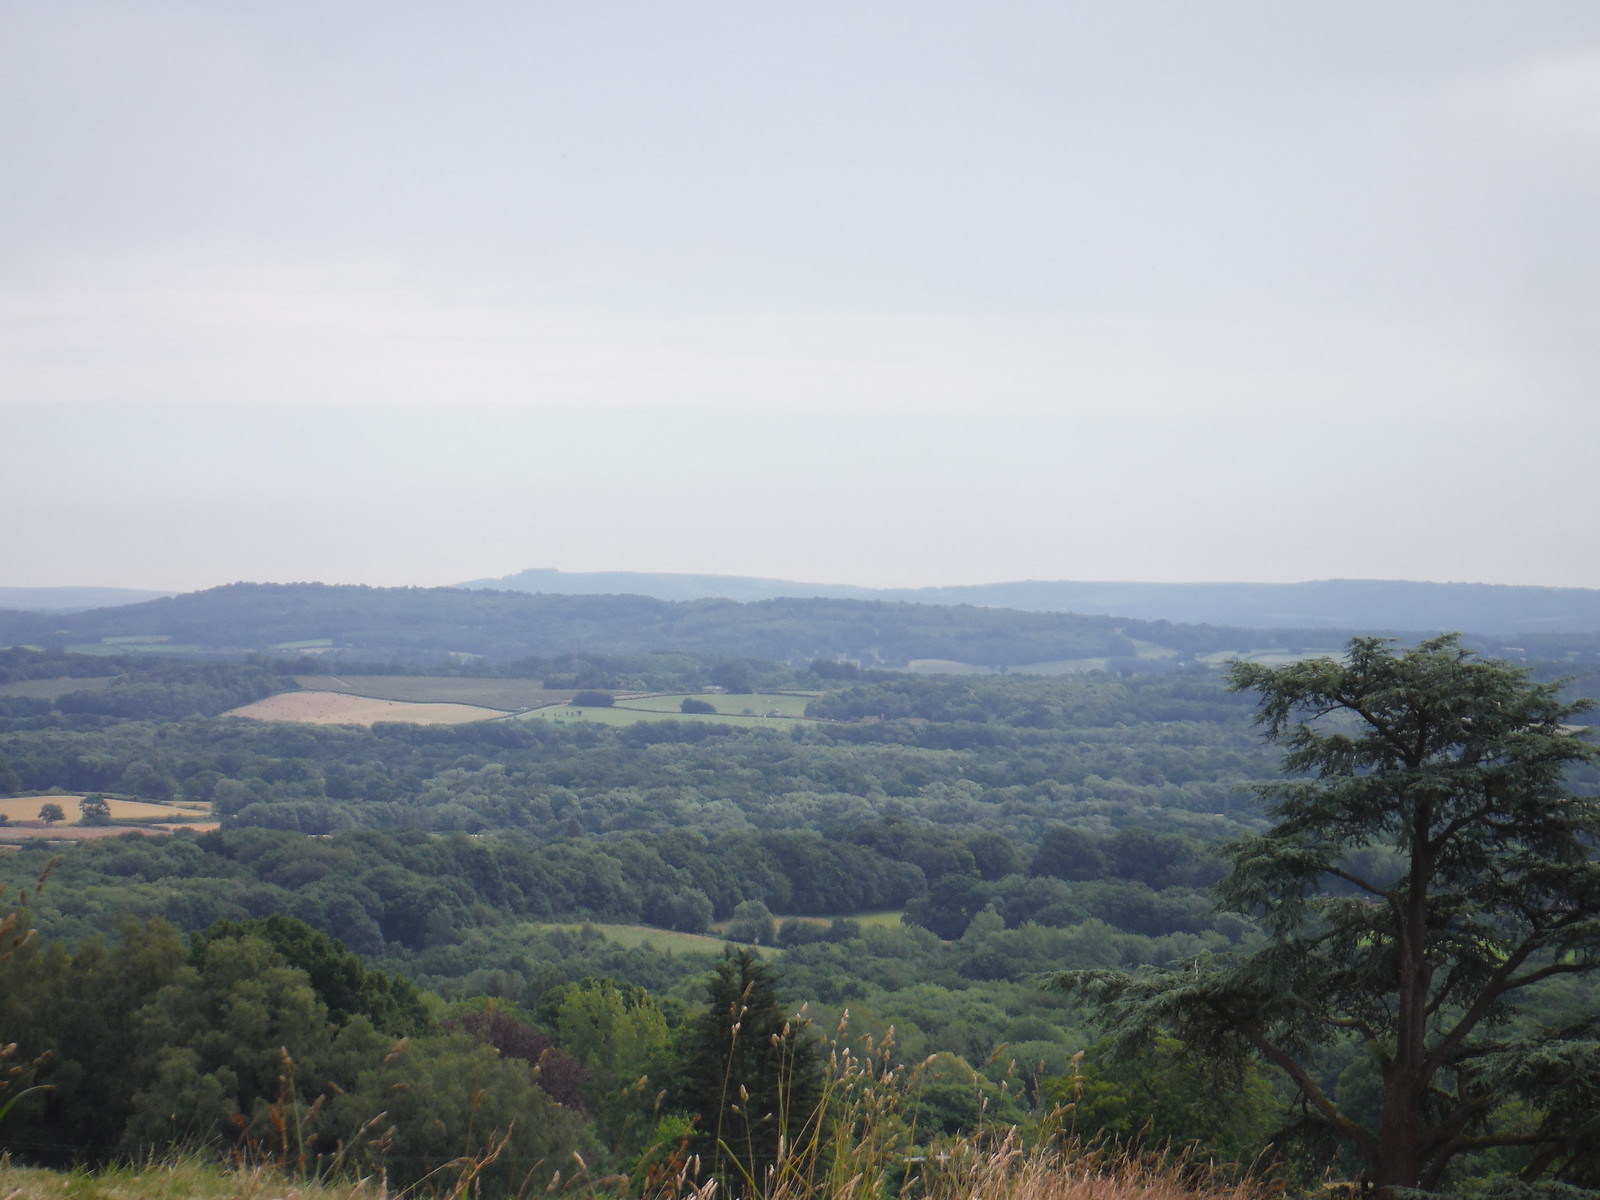 View from near Blackdown Park (house) SWC Walk 48 Haslemere to Midhurst (via Lurgashall or Lickfold)